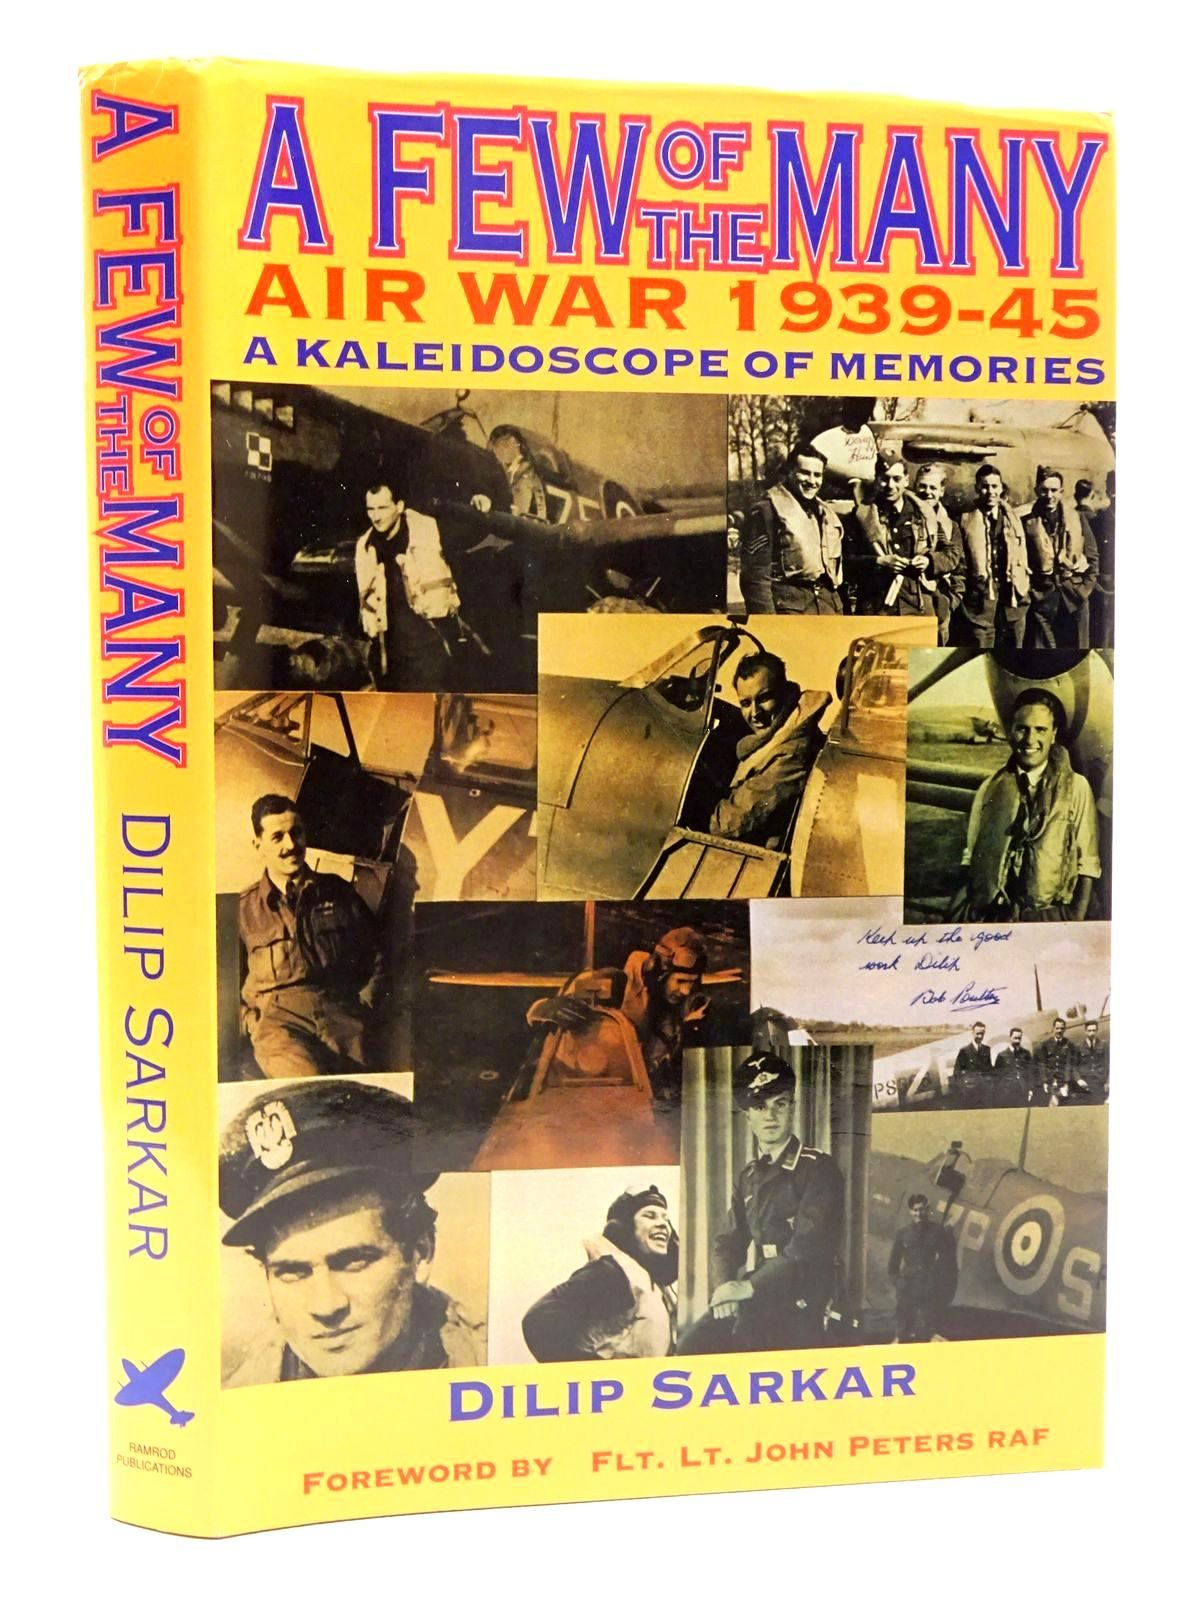 Photo of A FEW OF THE MANY AIR WAR 1939-45 A KALEIDOSCOPE OF MEMORIES written by Sarkar, Dilip published by Ramrod Publications (STOCK CODE: 1610235)  for sale by Stella & Rose's Books